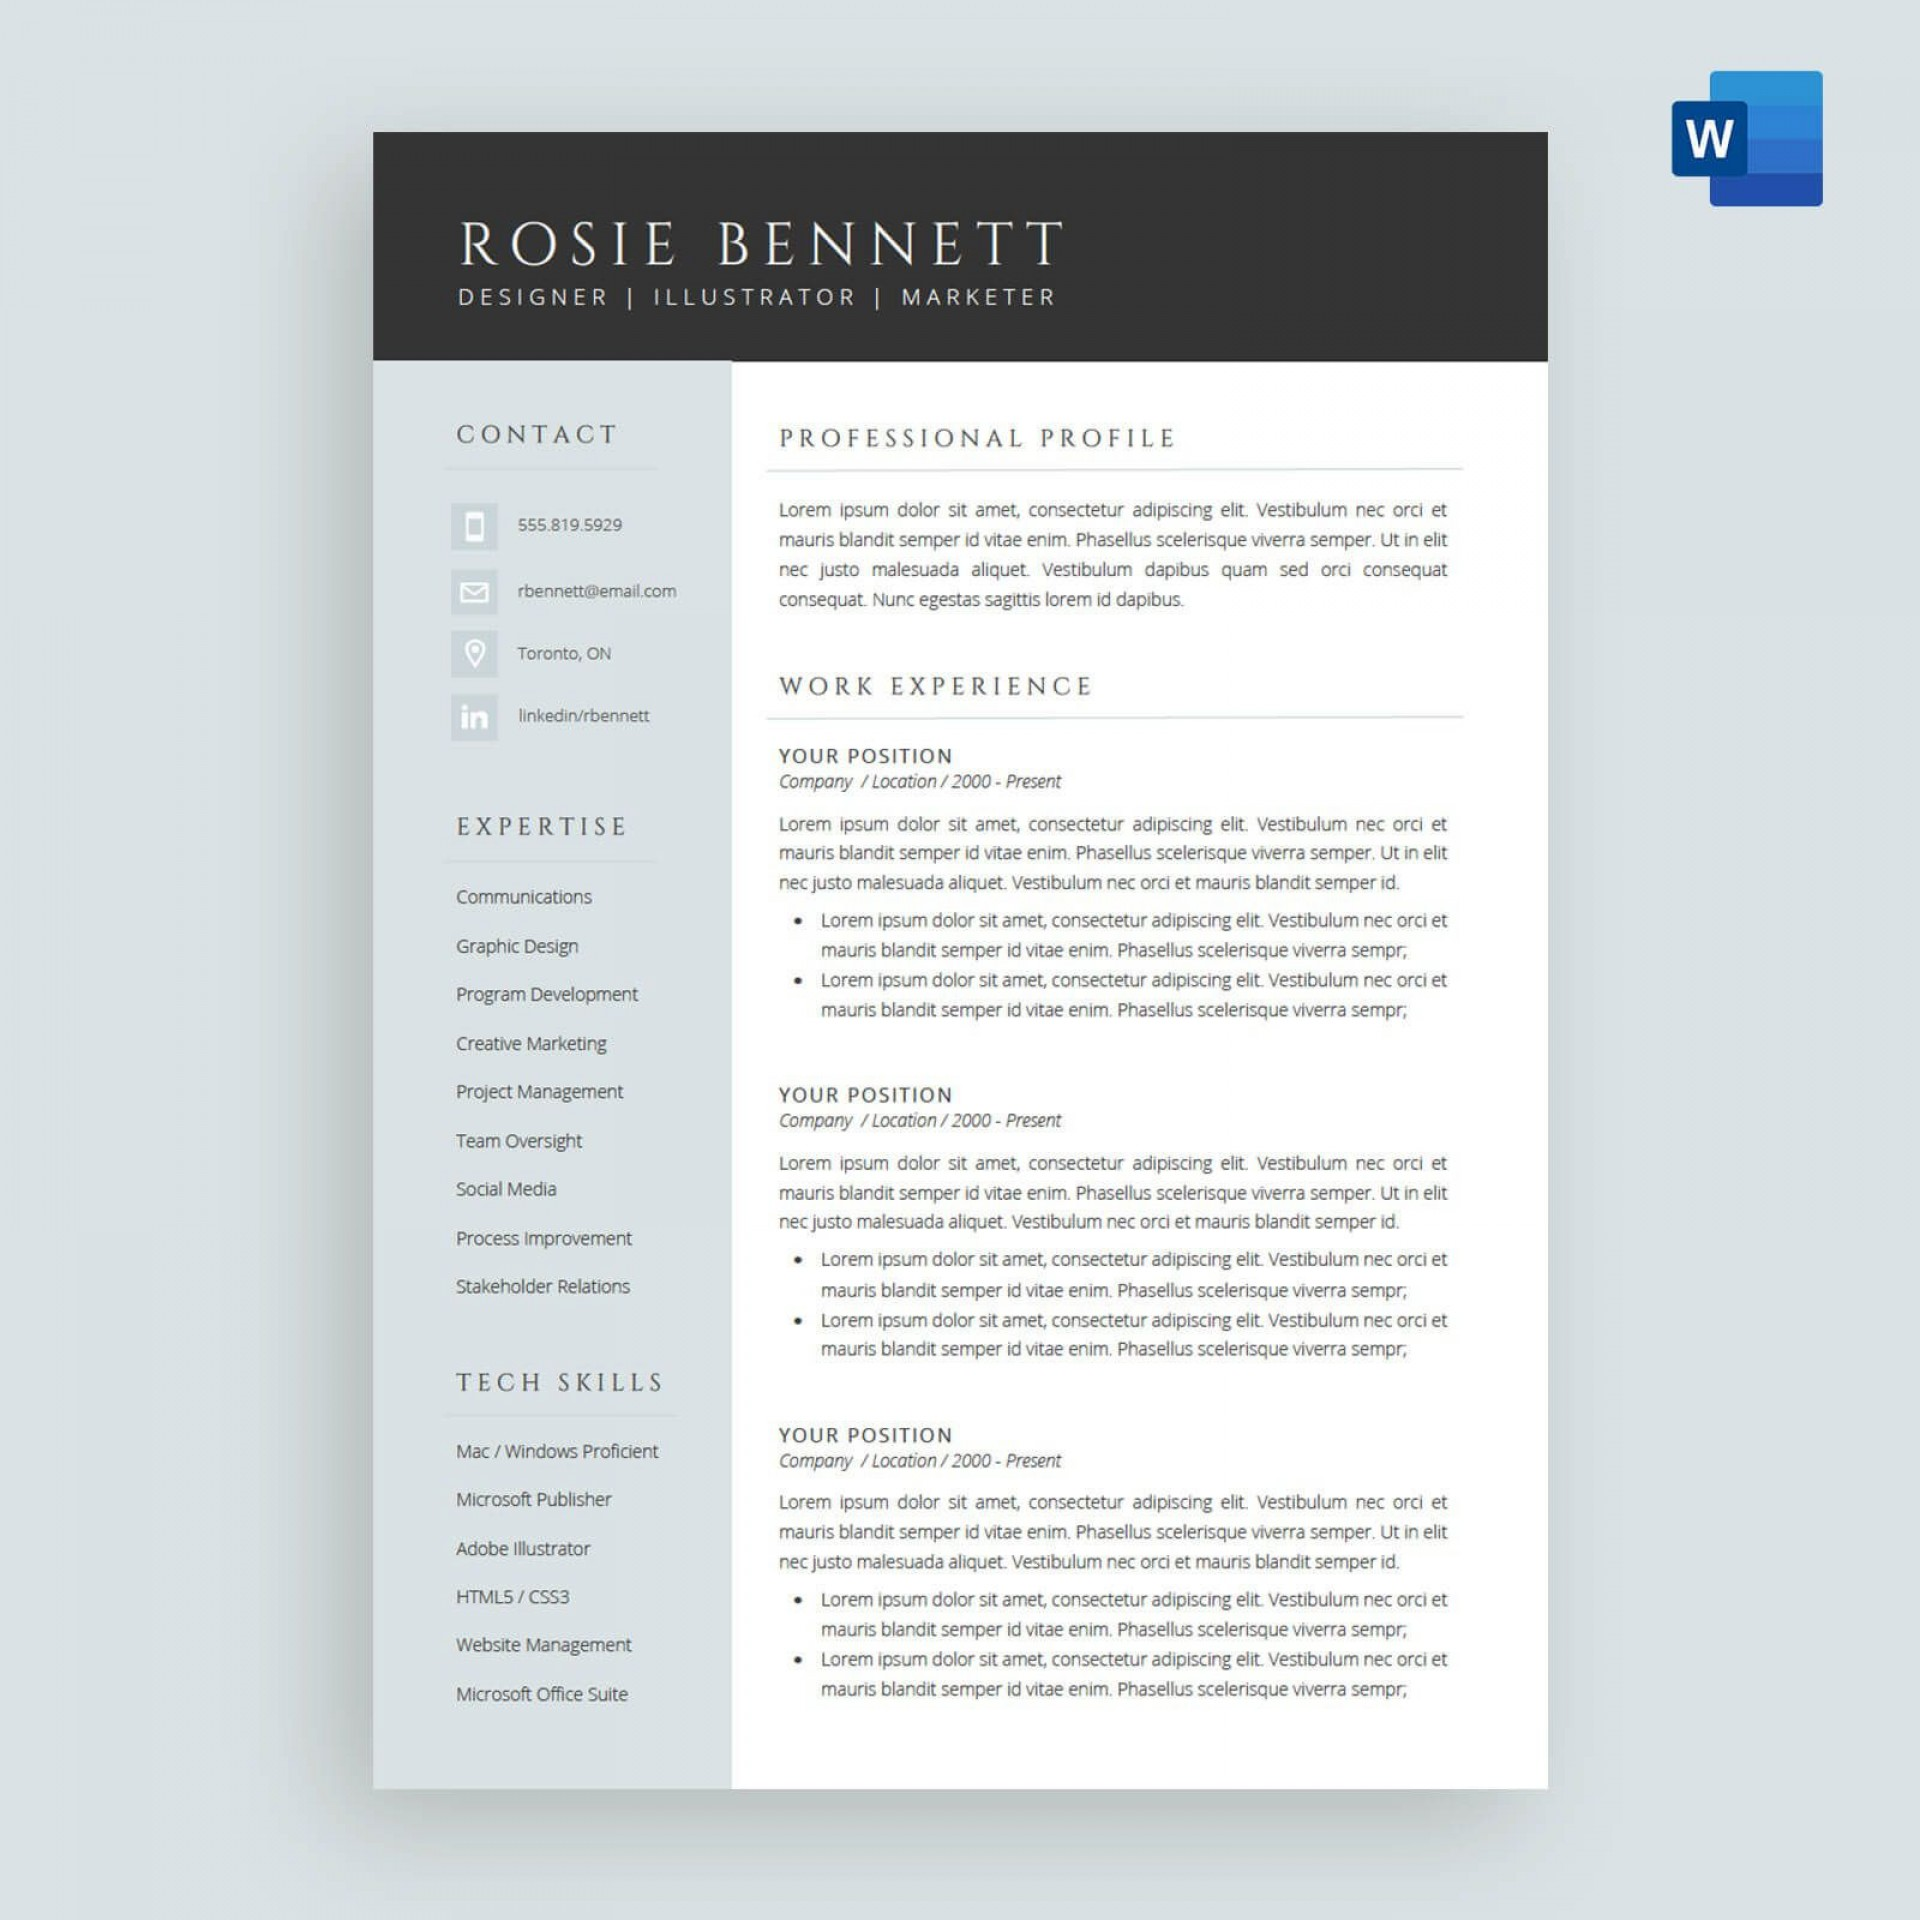 008 Incredible Resume Reference Template Microsoft Word High Definition  List1920